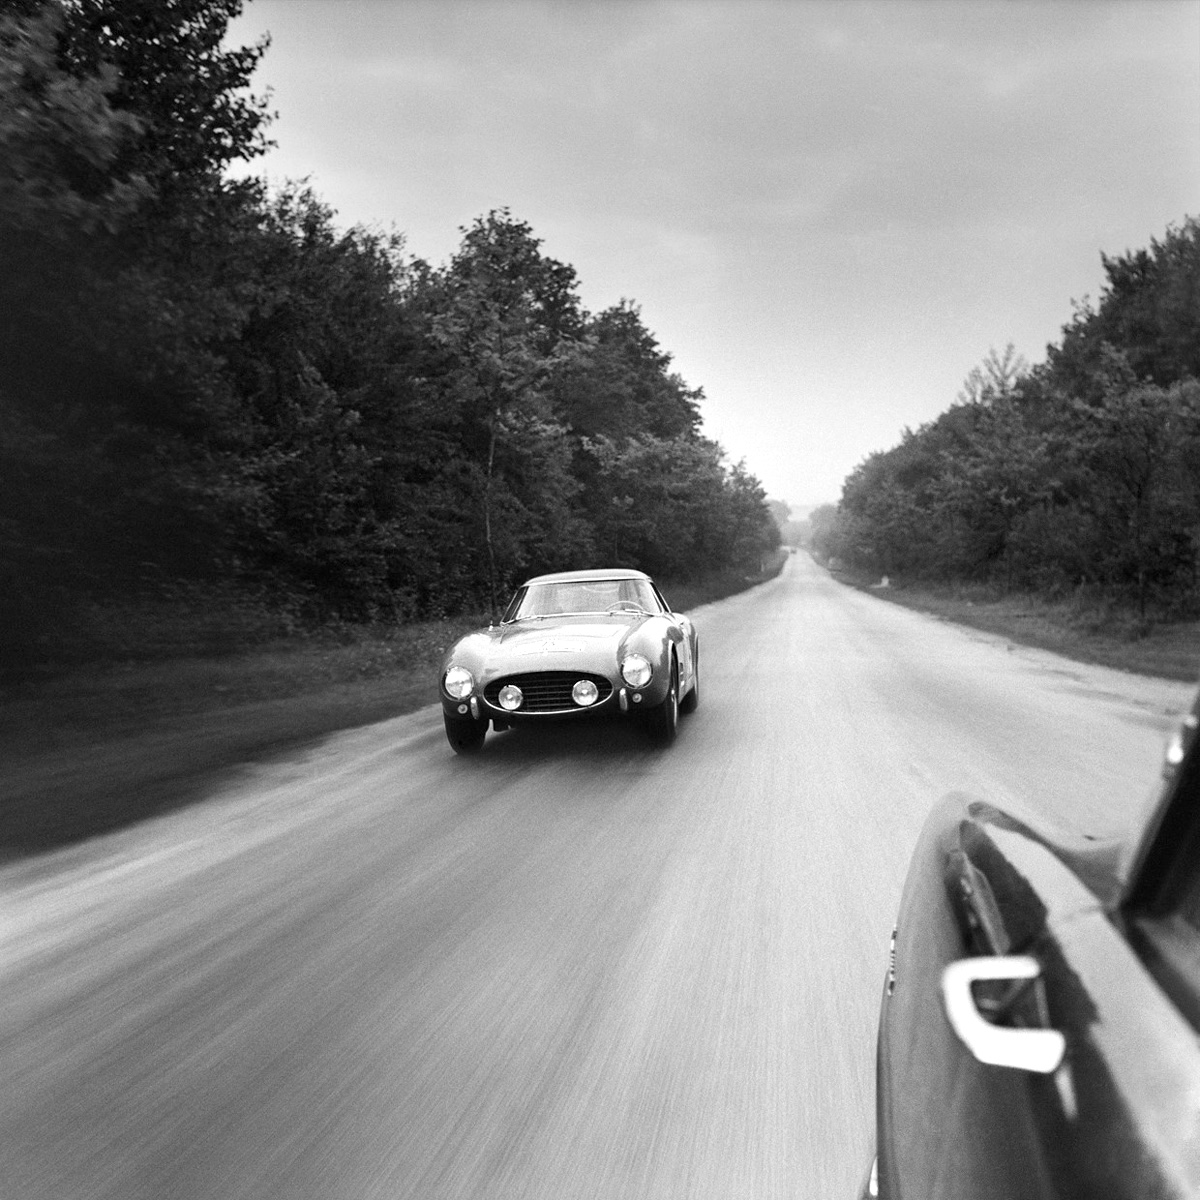 For The Thrill of Speed - On The Road to Victory